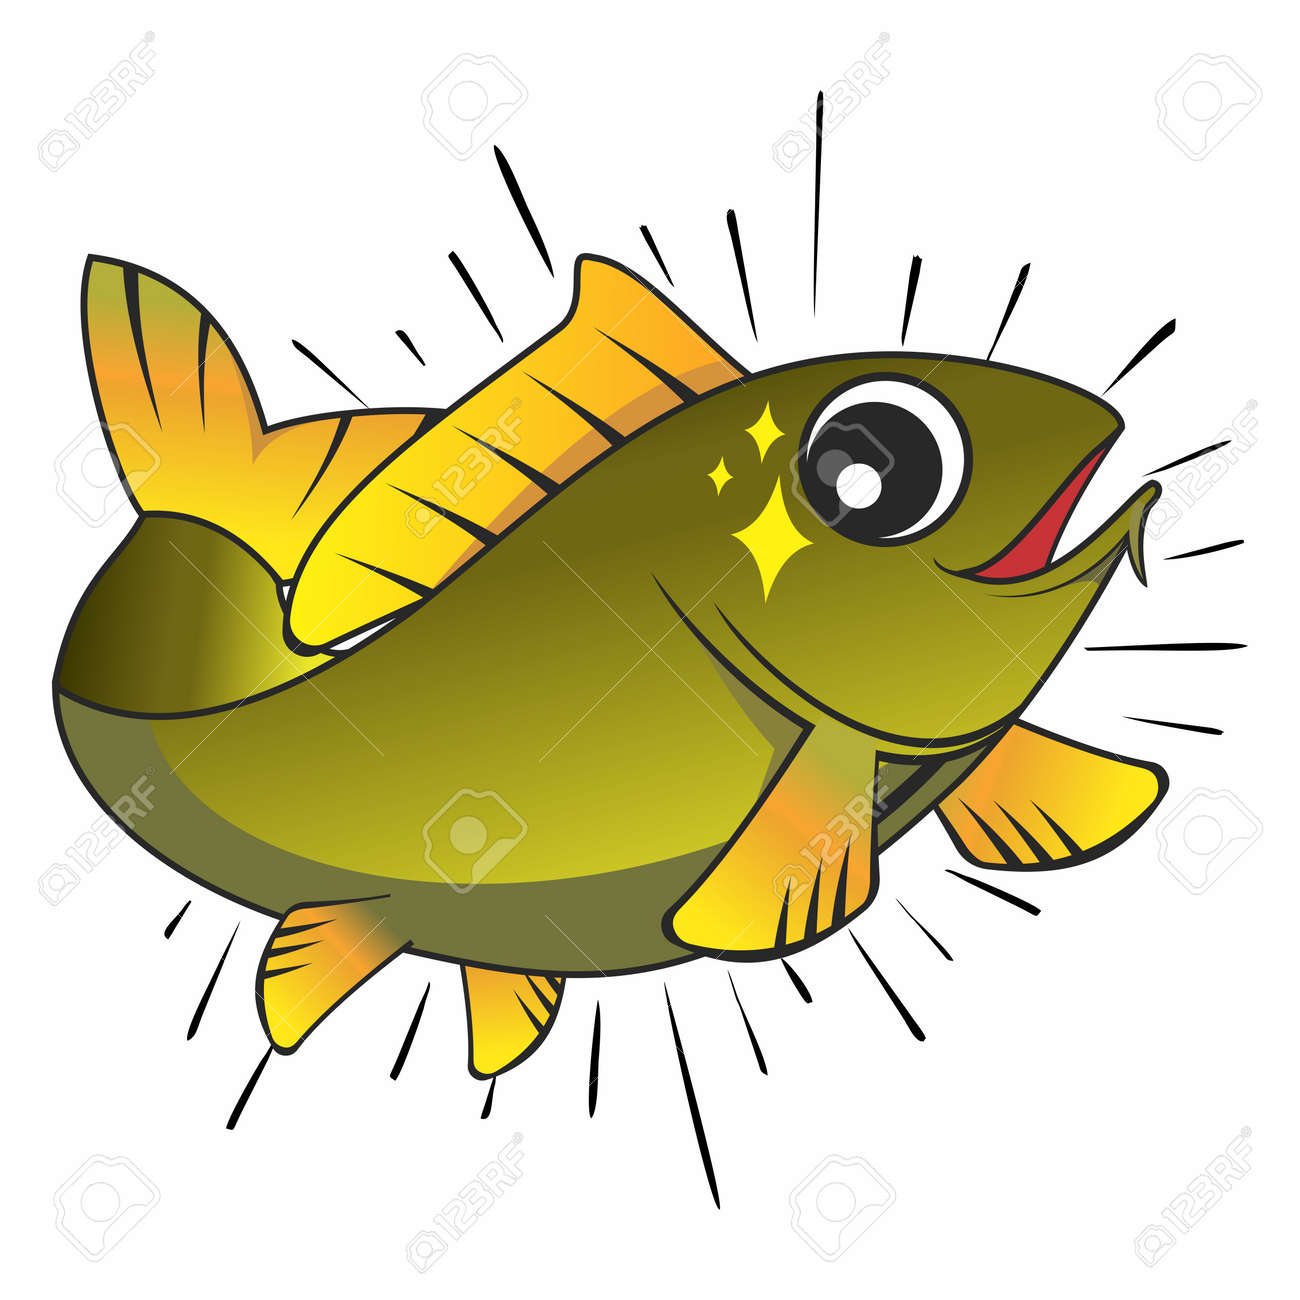 Freshwater fish jumping - Bass Fish Jumping Vector Smart Happy Cartoon Fish Jumping Out Of Water Isolated On White